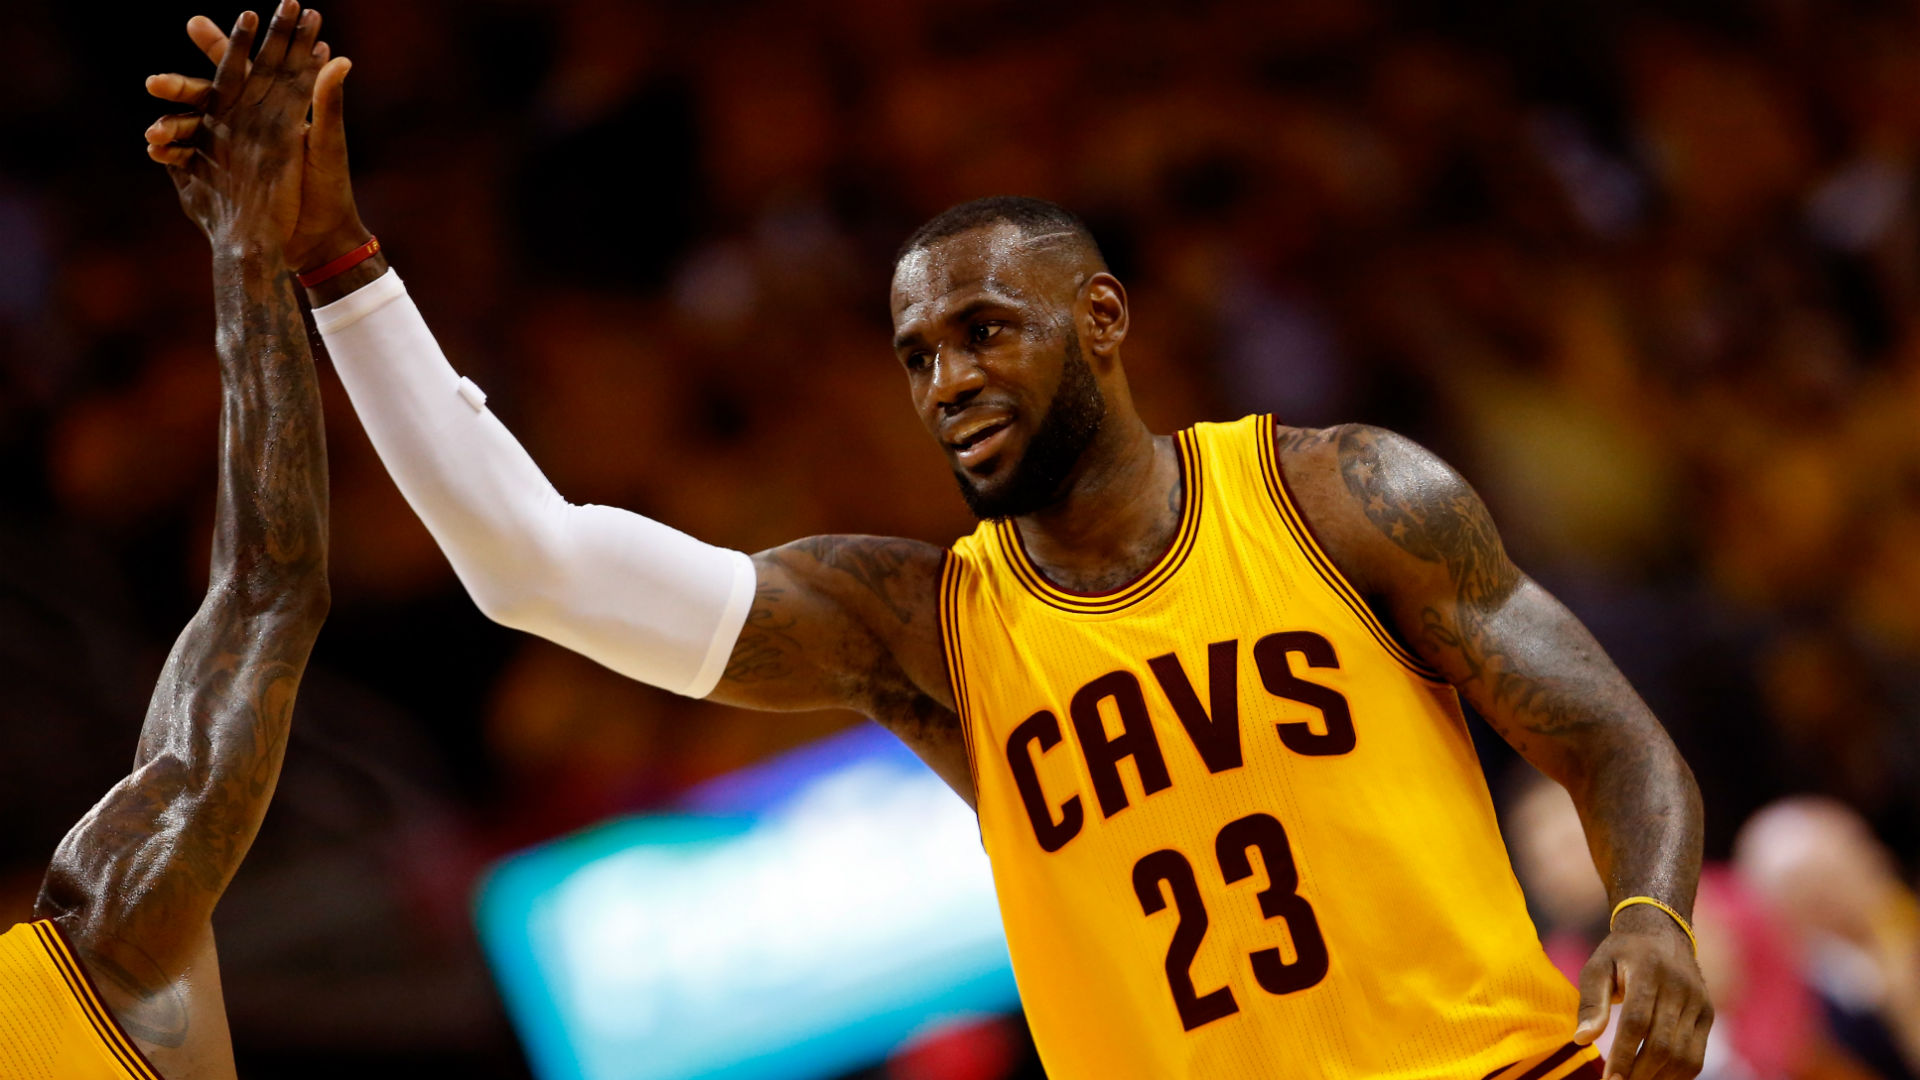 LeBron James nears accomplishing mission: A Cleveland championship